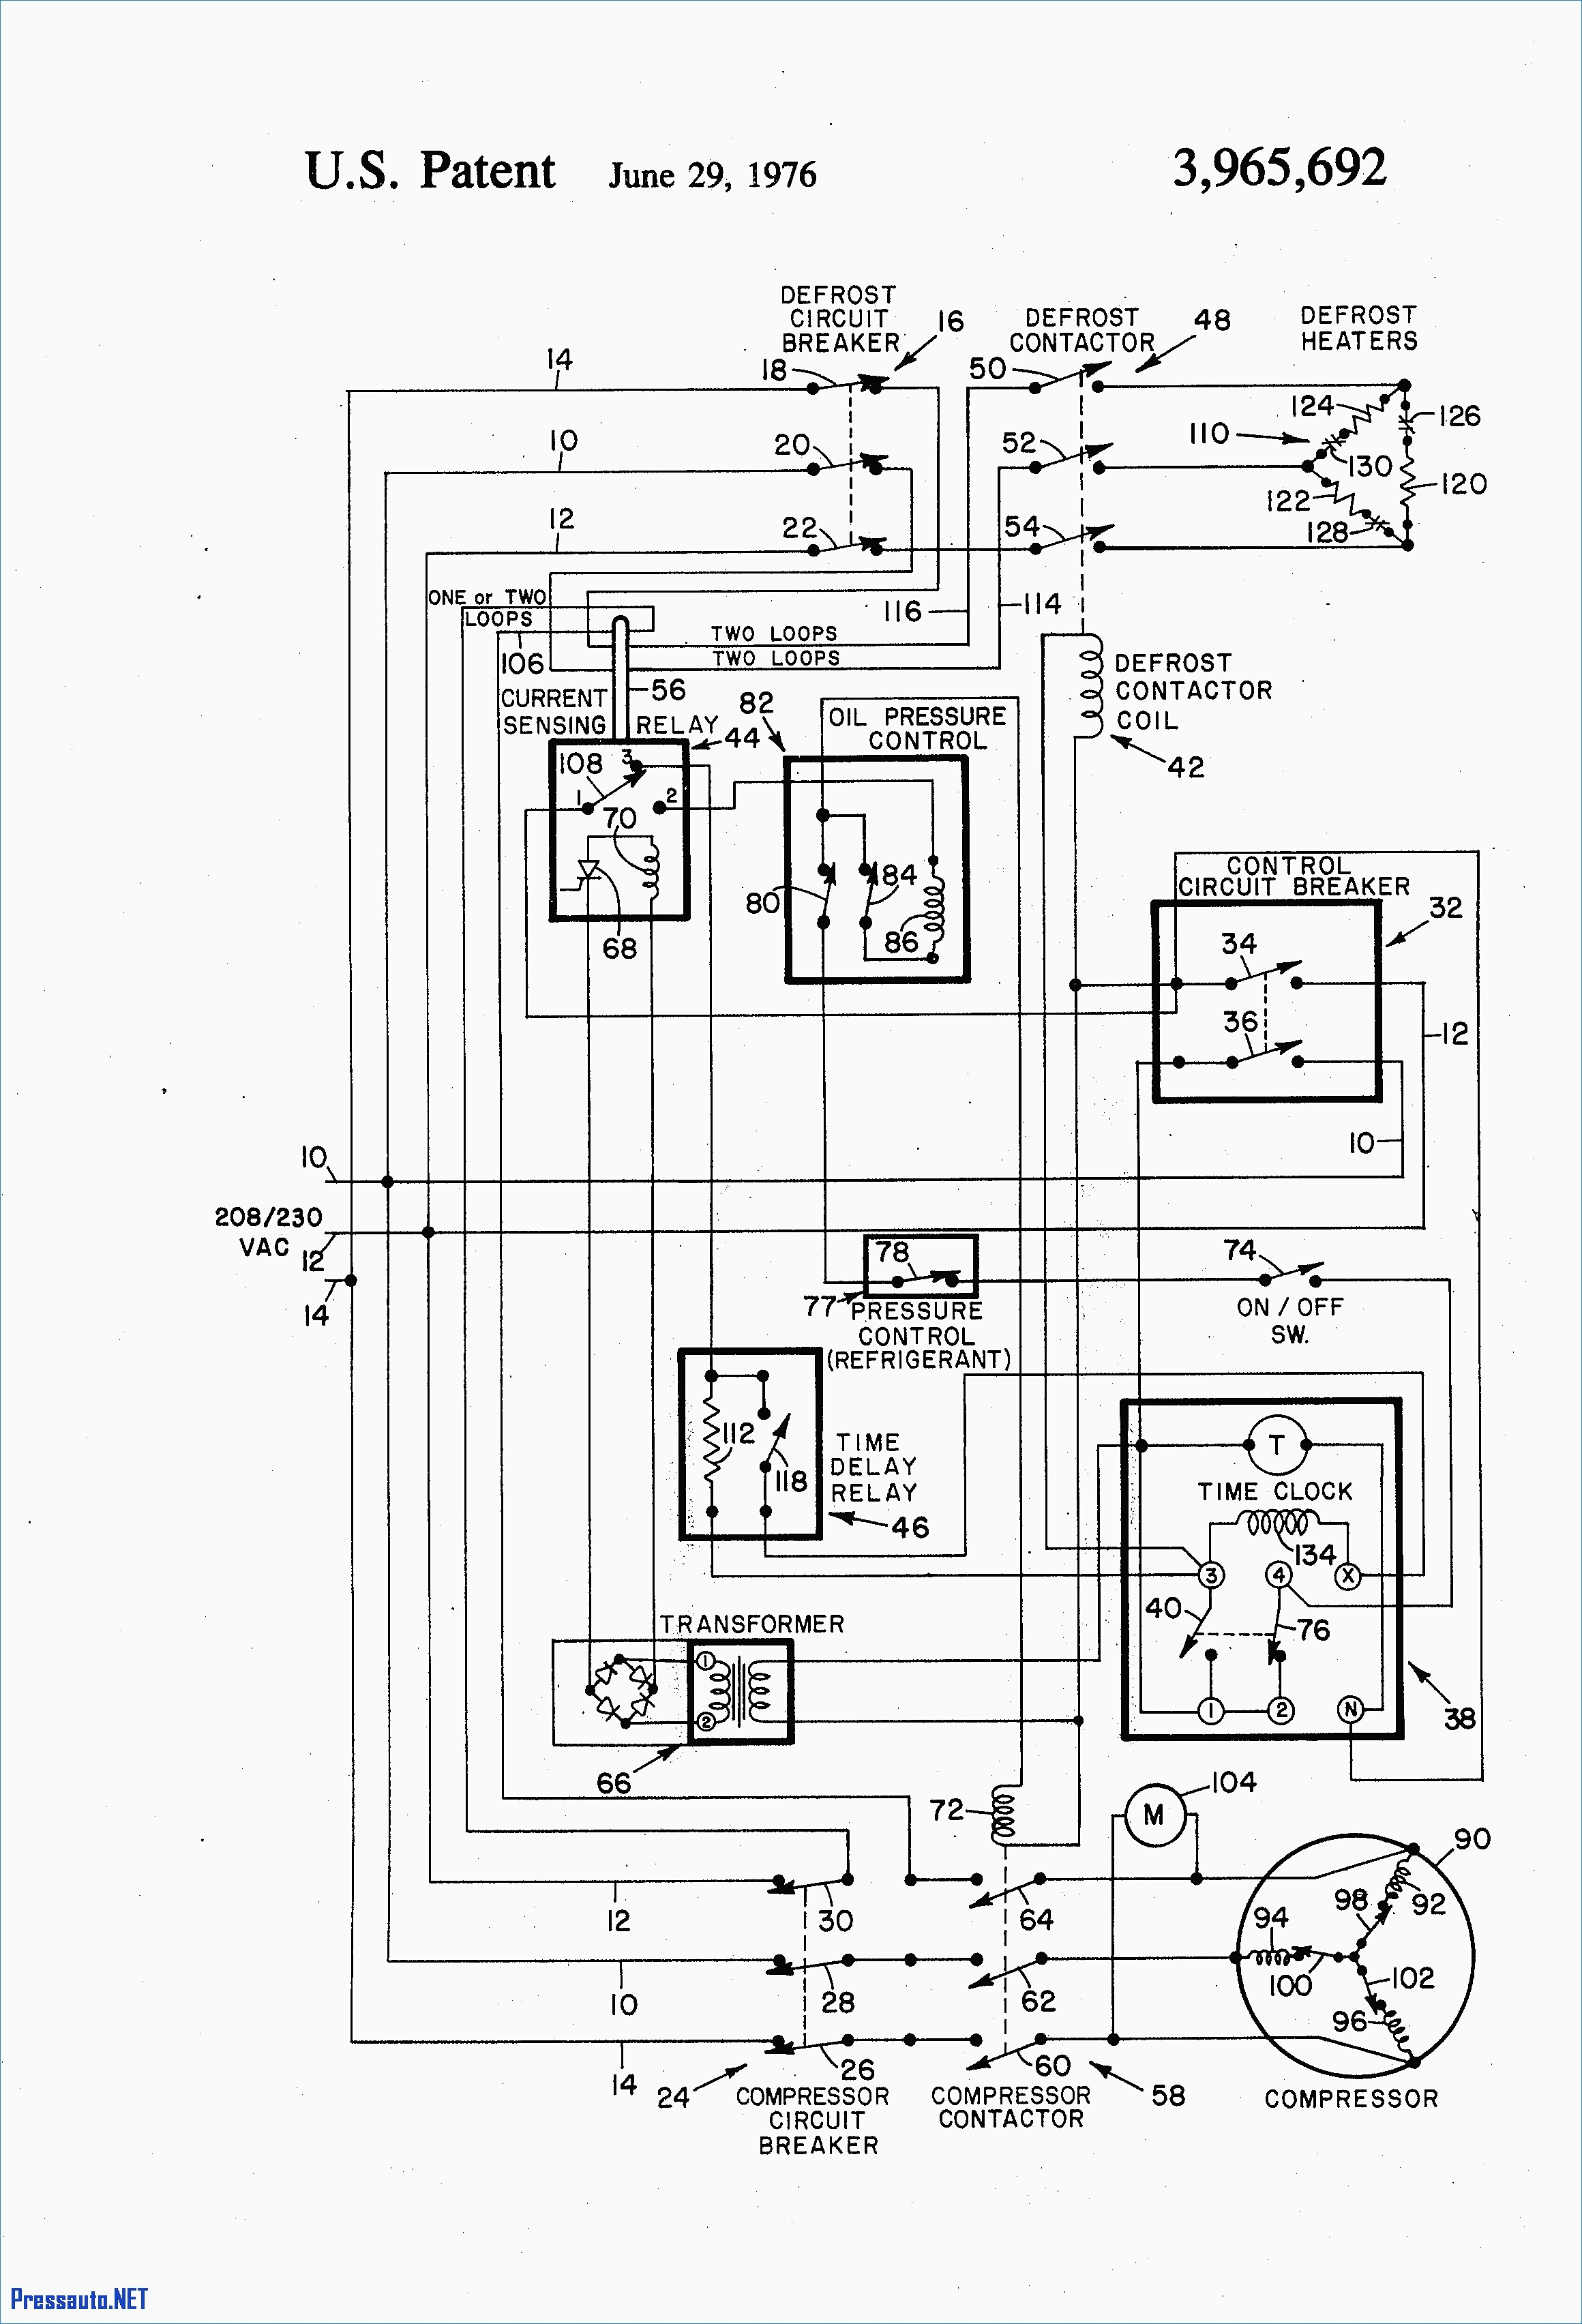 reversing contactor wiring diagram wiring diagrams best abb wiring diagrams wiring diagram essig square d lighting contactor wiring reversing contactor wiring diagram